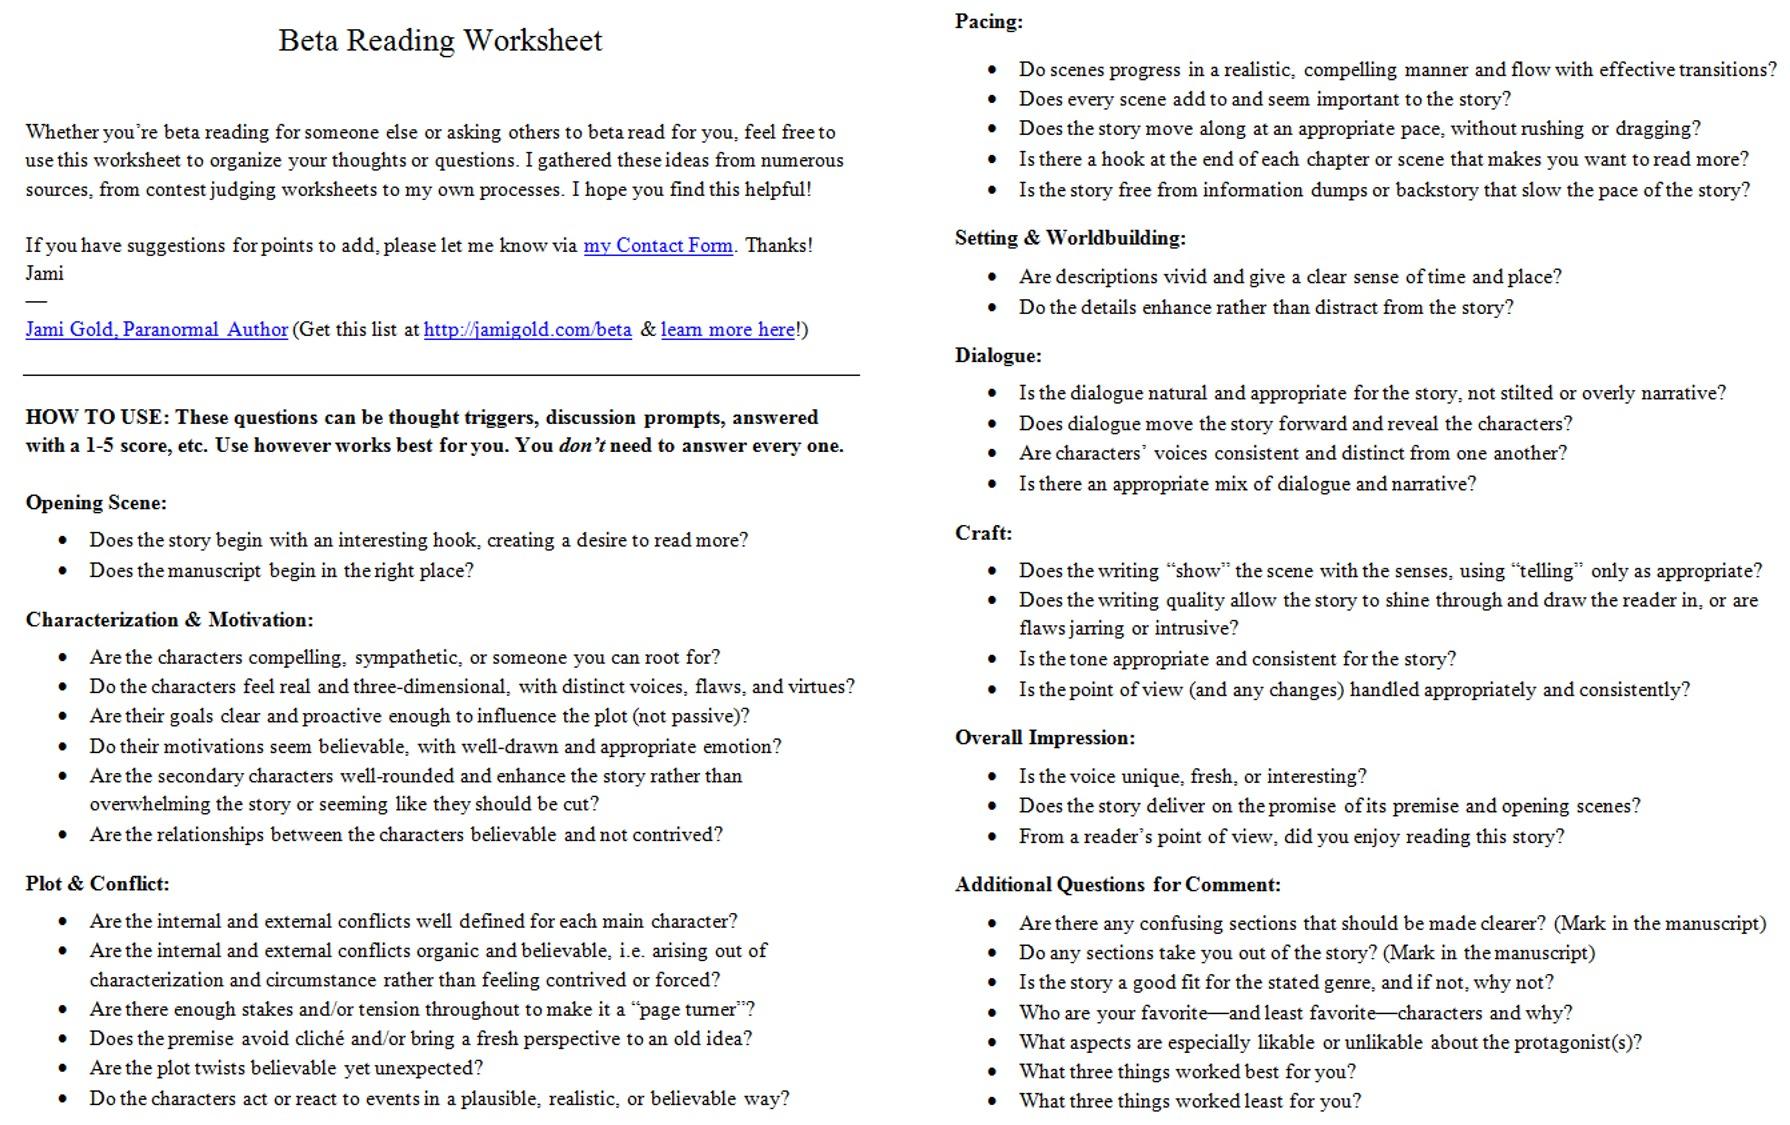 Aldiablosus  Pleasant Worksheets For Writers  Jami Gold Paranormal Author With Foxy Screen Shot Of The Twopage Beta Reading Worksheet With Beauteous Famous Ocean Liner Worksheet Also Alphabet Writing Practice Worksheets In Addition Worksheets For Third Graders And Rounding Numbers Worksheets Grade  As Well As Linear Systems Word Problems Worksheet Additionally Clock Practice Worksheets From Jamigoldcom With Aldiablosus  Foxy Worksheets For Writers  Jami Gold Paranormal Author With Beauteous Screen Shot Of The Twopage Beta Reading Worksheet And Pleasant Famous Ocean Liner Worksheet Also Alphabet Writing Practice Worksheets In Addition Worksheets For Third Graders From Jamigoldcom